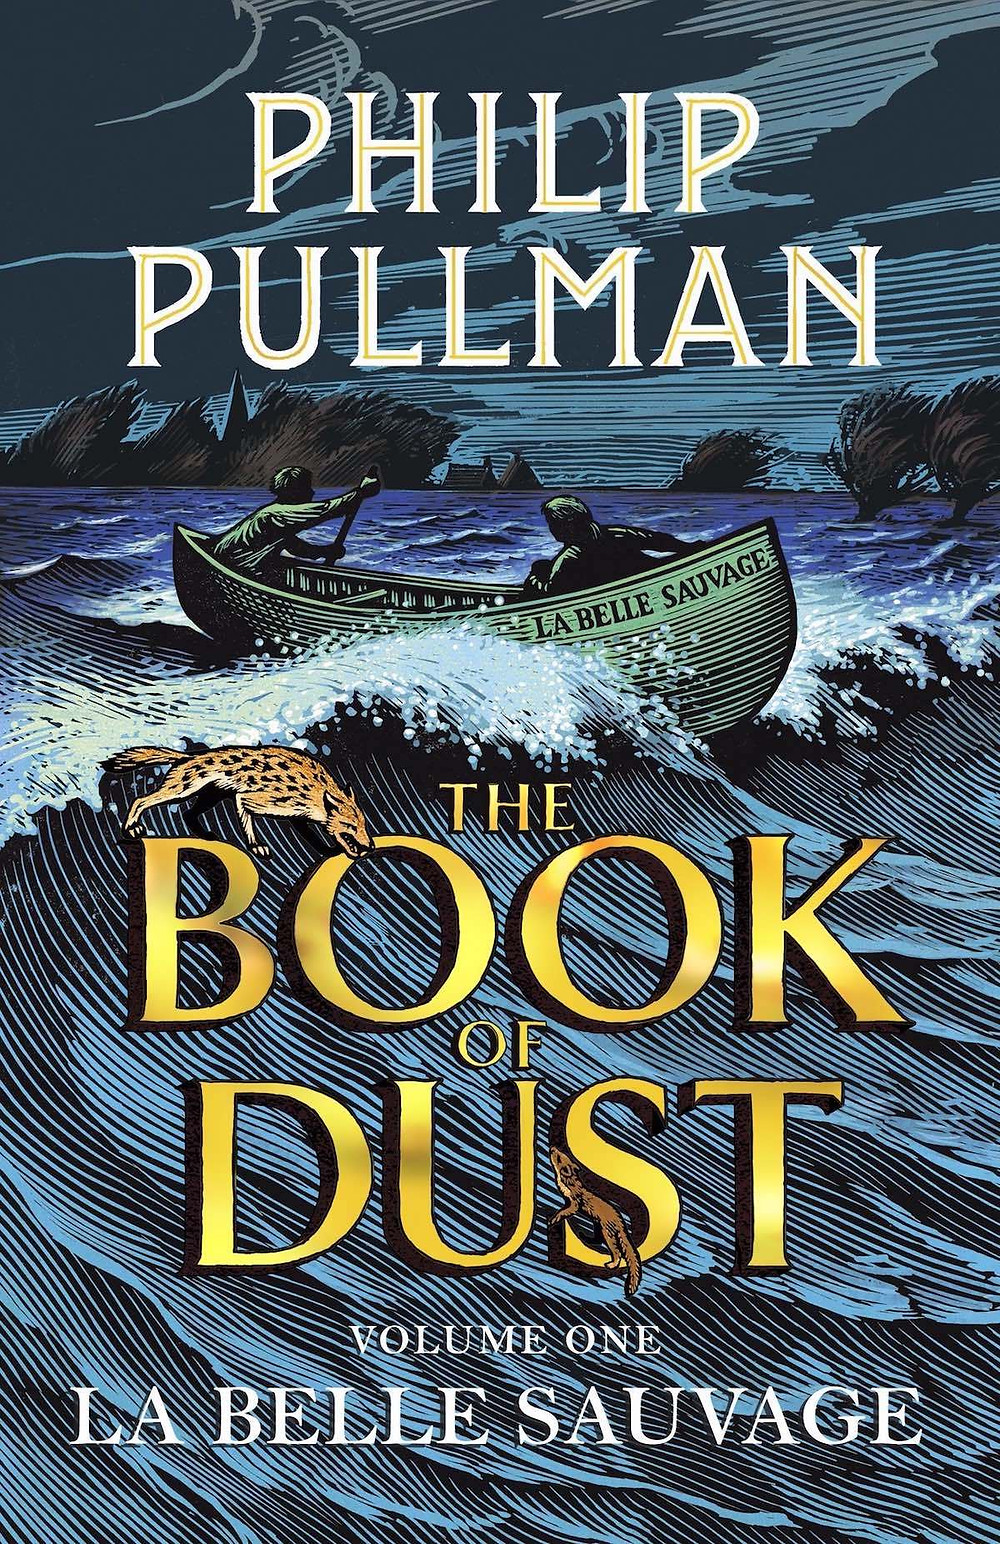 The Book Of Dust (cover), by Philip Pullman